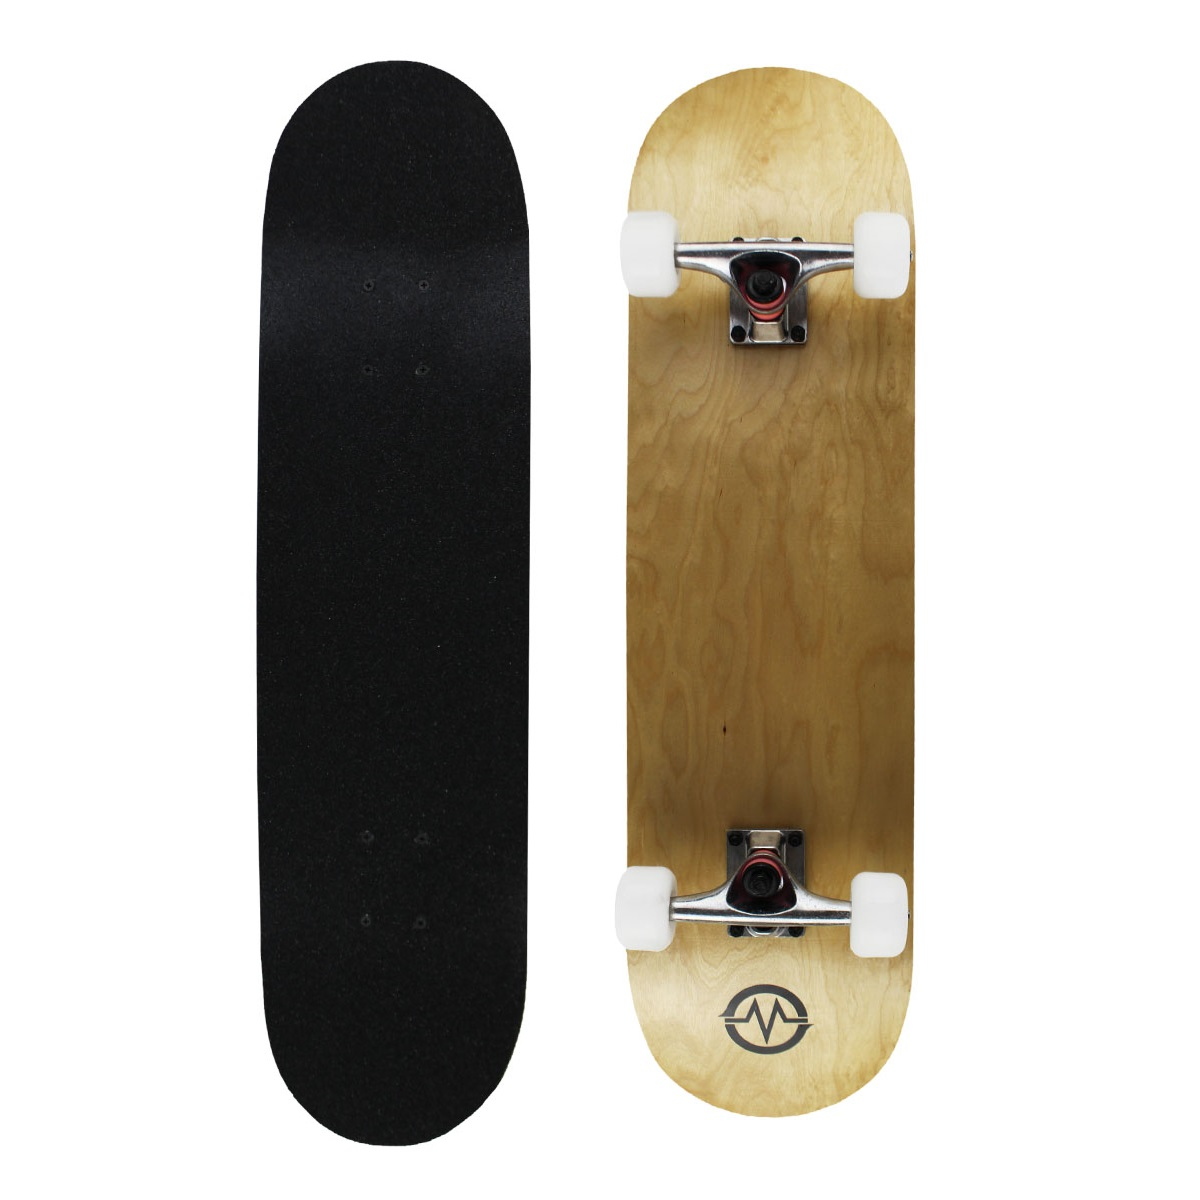 MASTER Experience Board - wood